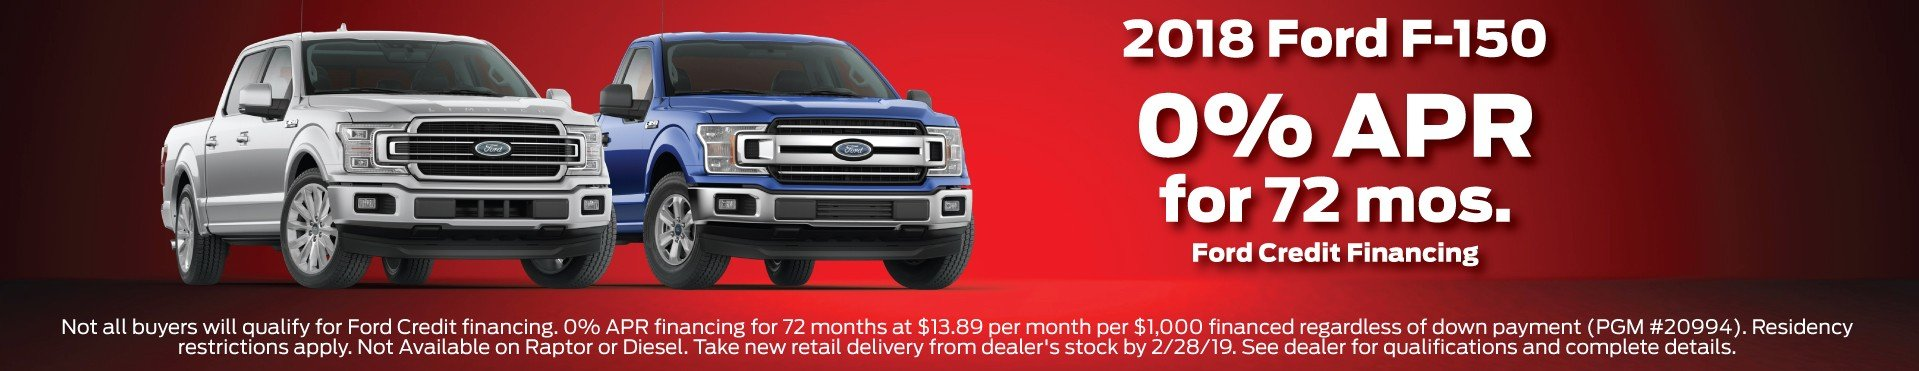 2018 Ford F150 Offer 2-2019